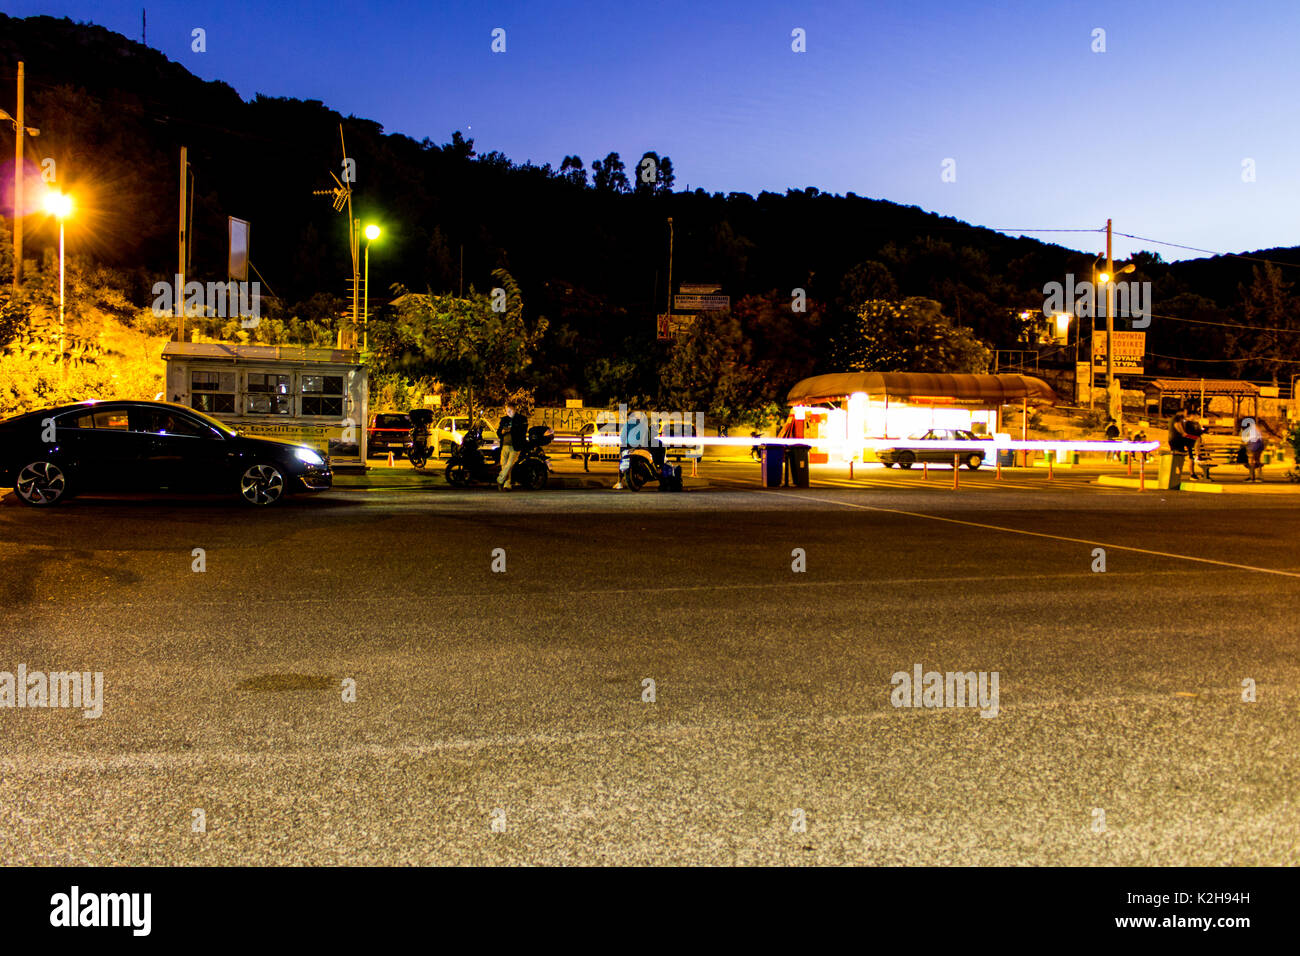 Cars waiting in line at the port of Agia Marina, Marathonas, Greece to embark on the ferry boat to Nea Styra, Euboia. - Stock Image